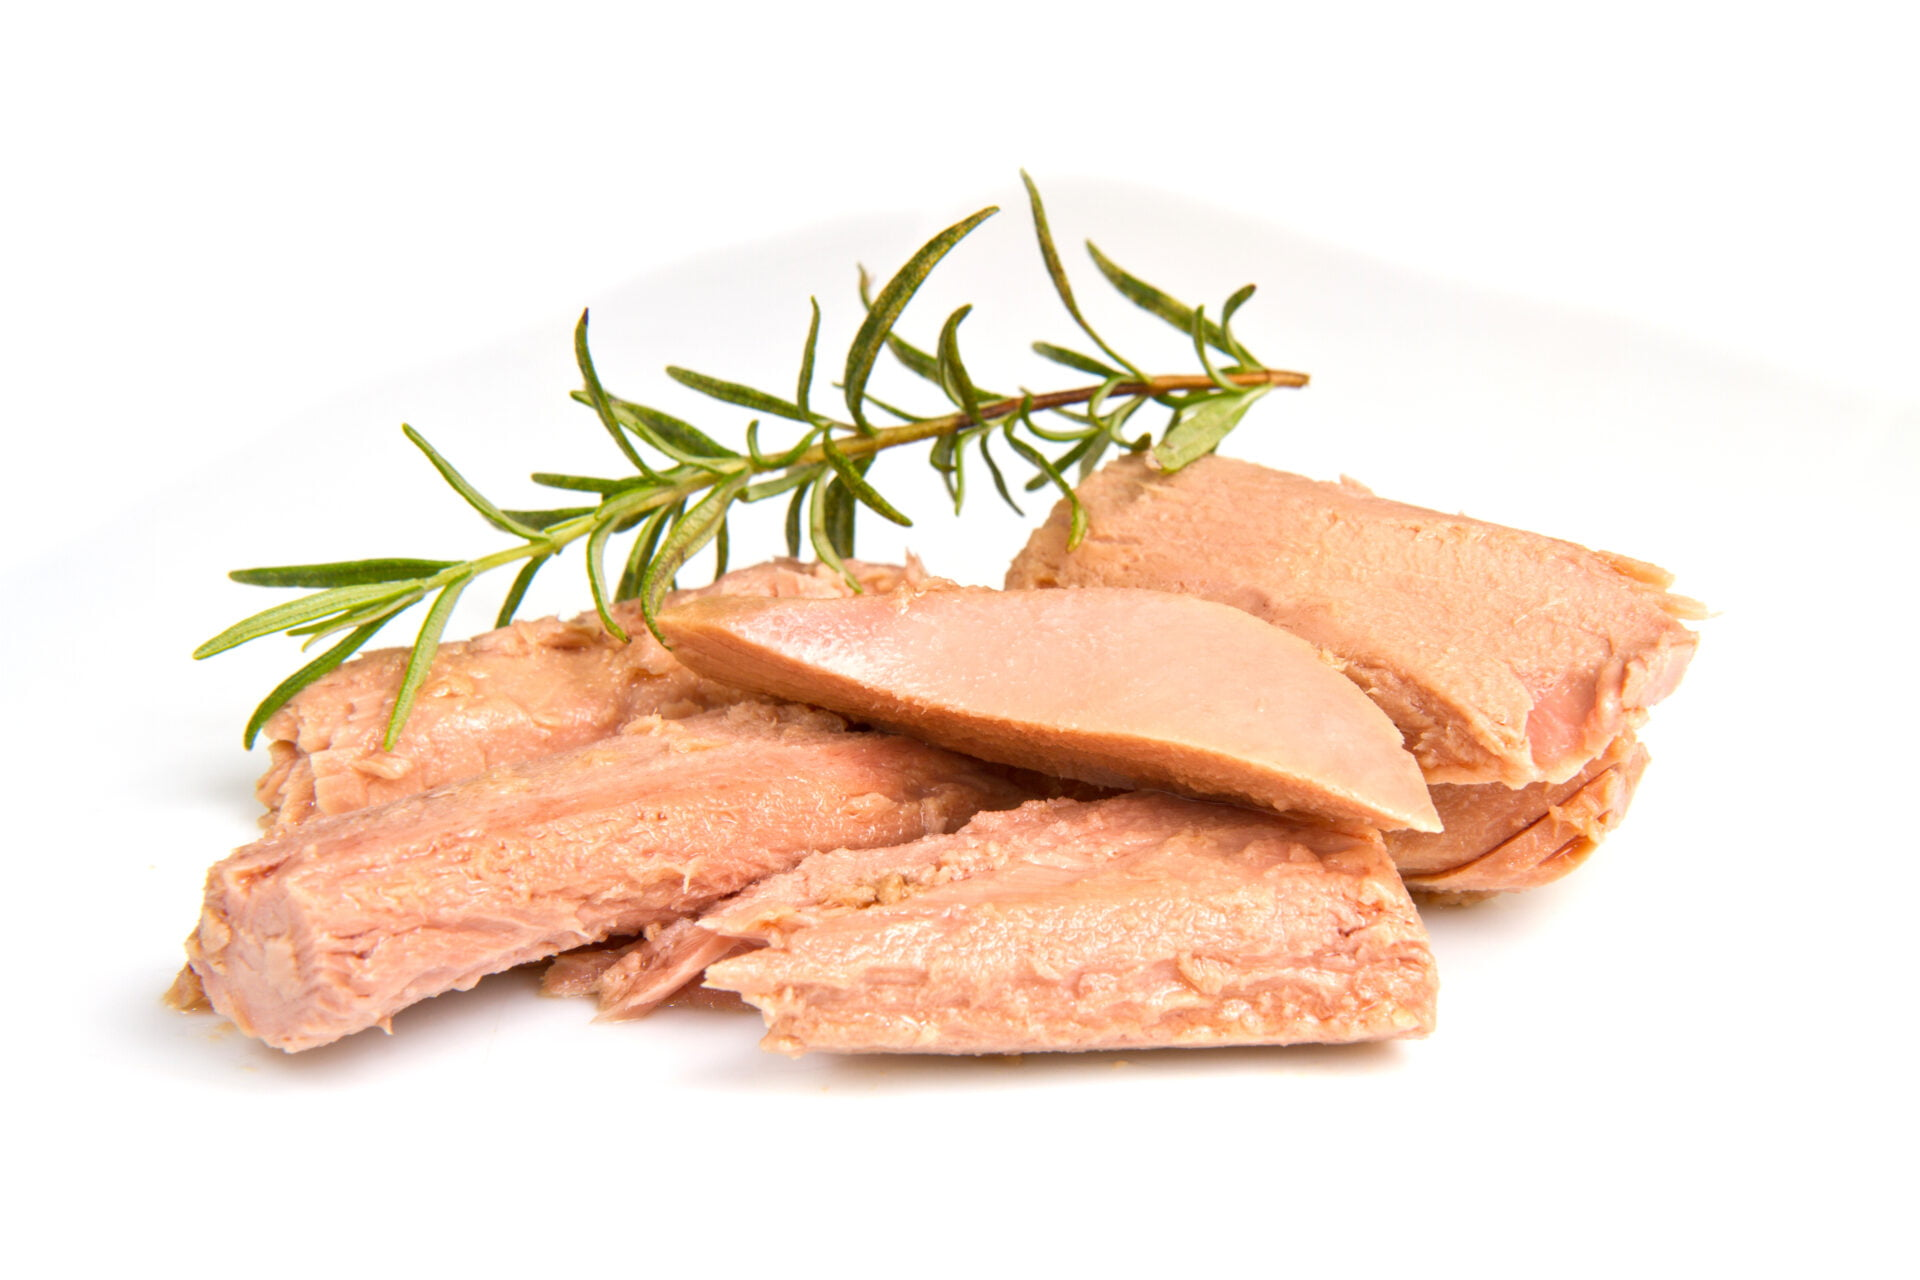 tuna fish isolated on white background with twig of rosemary